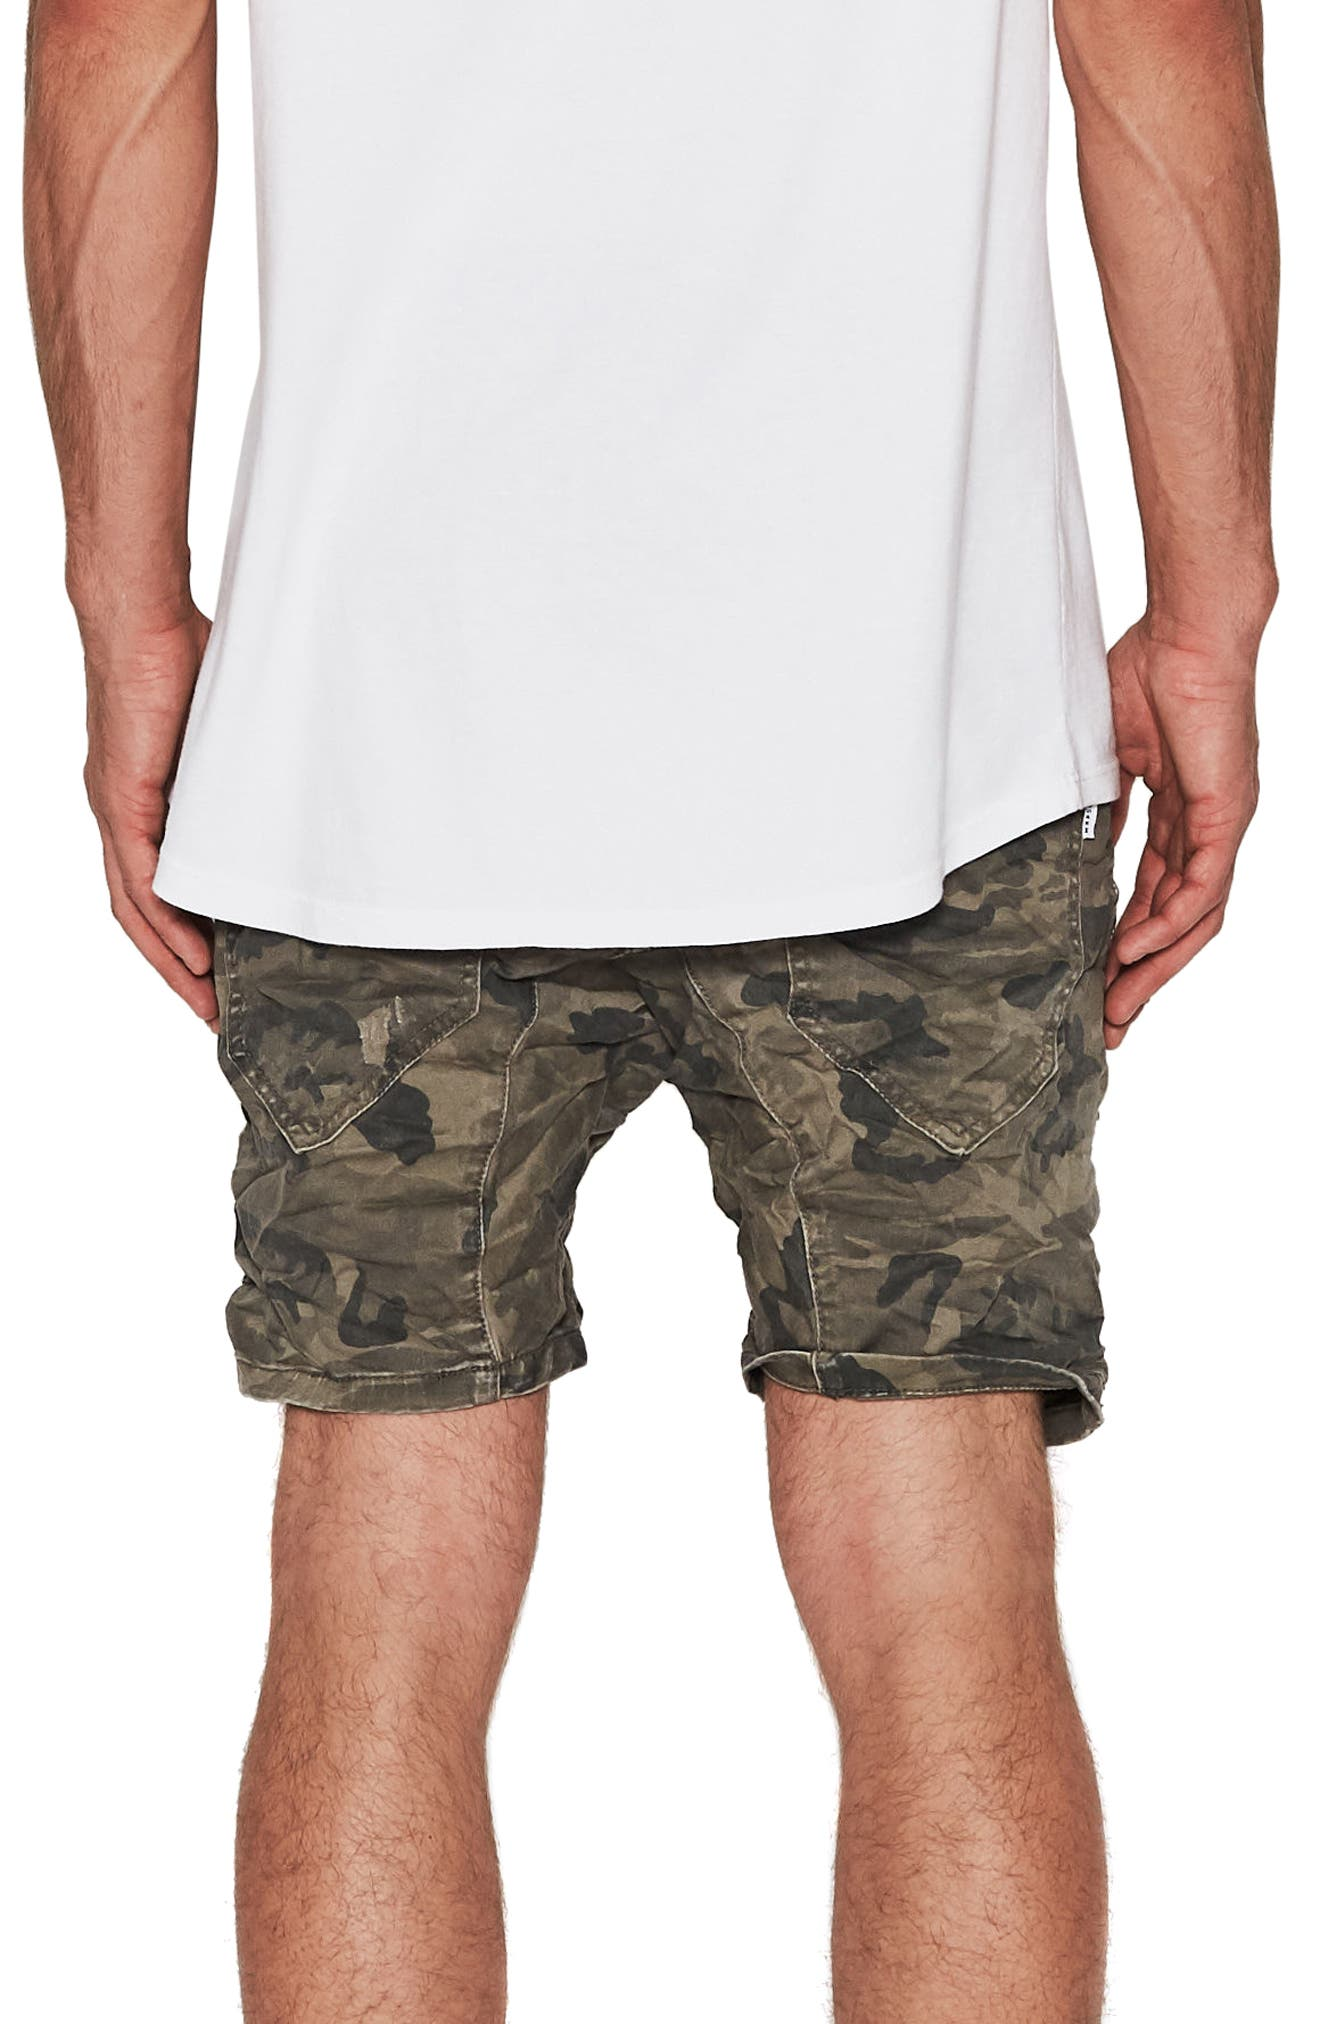 Destroyer Shorts,                             Alternate thumbnail 2, color,                             Airwolf Camo